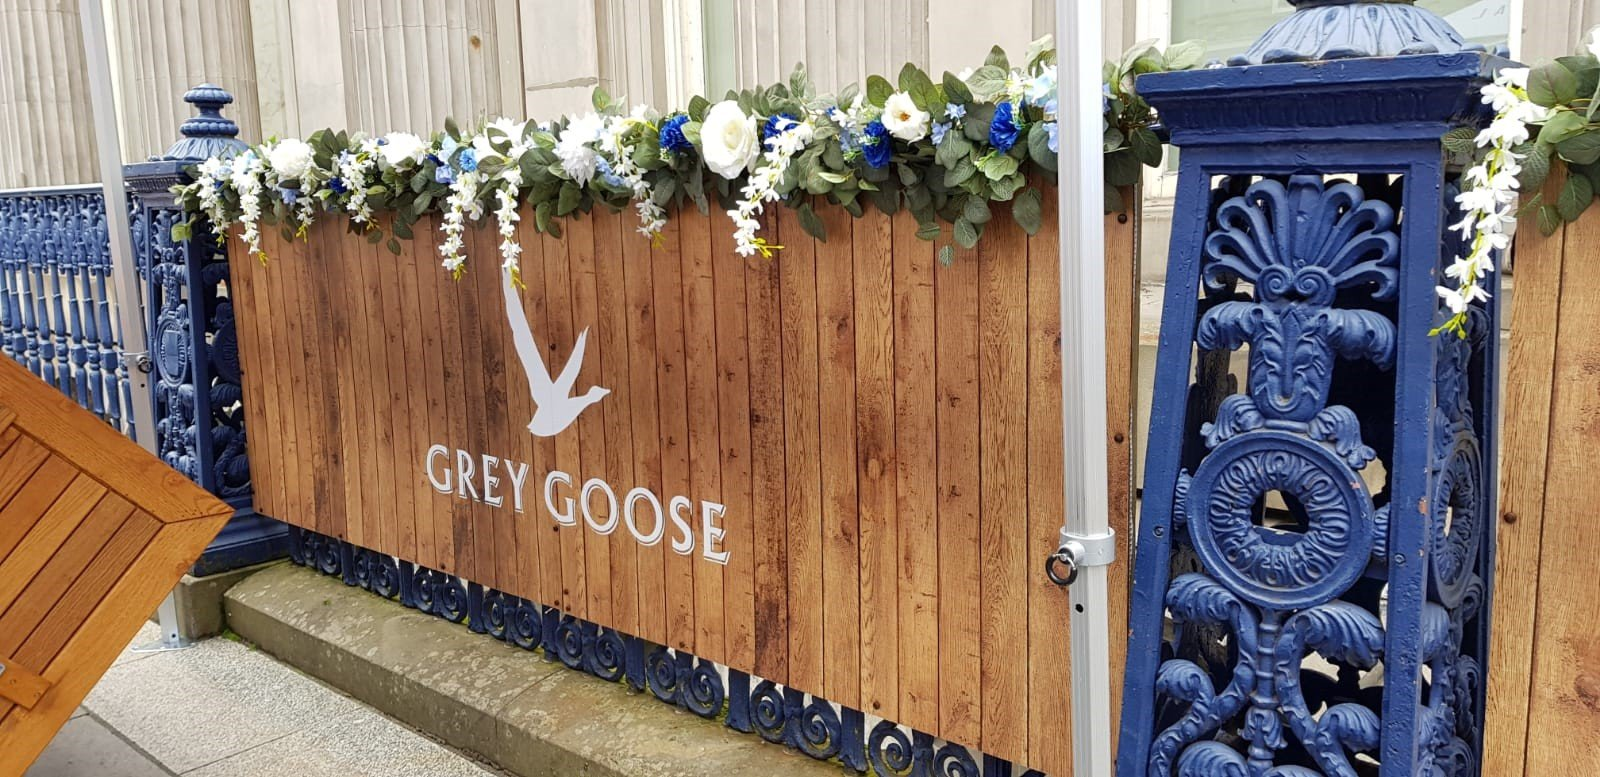 Grey Goose vodka branded panels to zone outdoor dining space decorated with artificial plants and blue and white florals